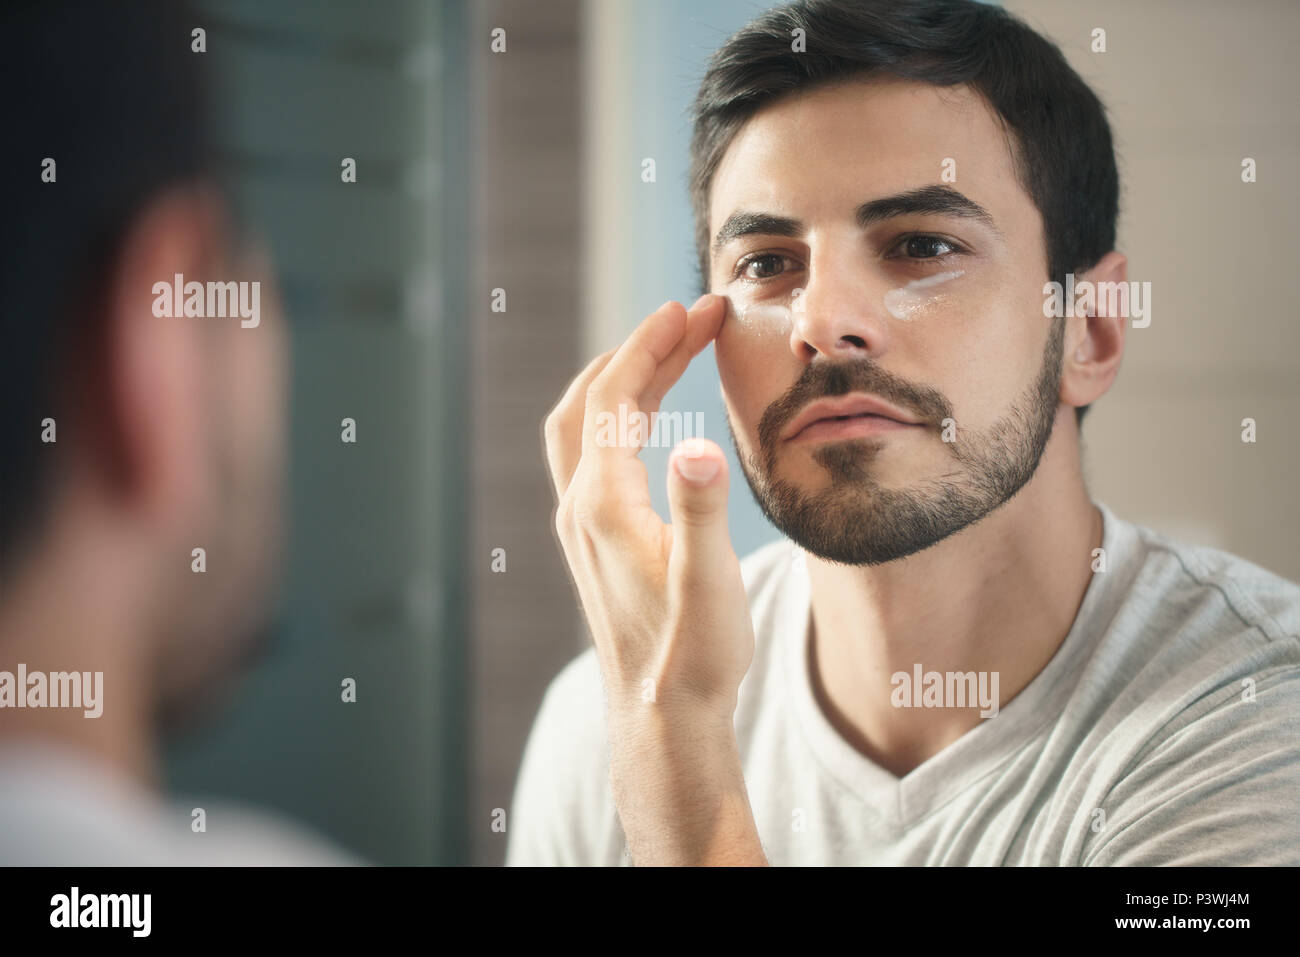 Young Man Applying Anti-aging Lotion fot Skin Care - Stock Image